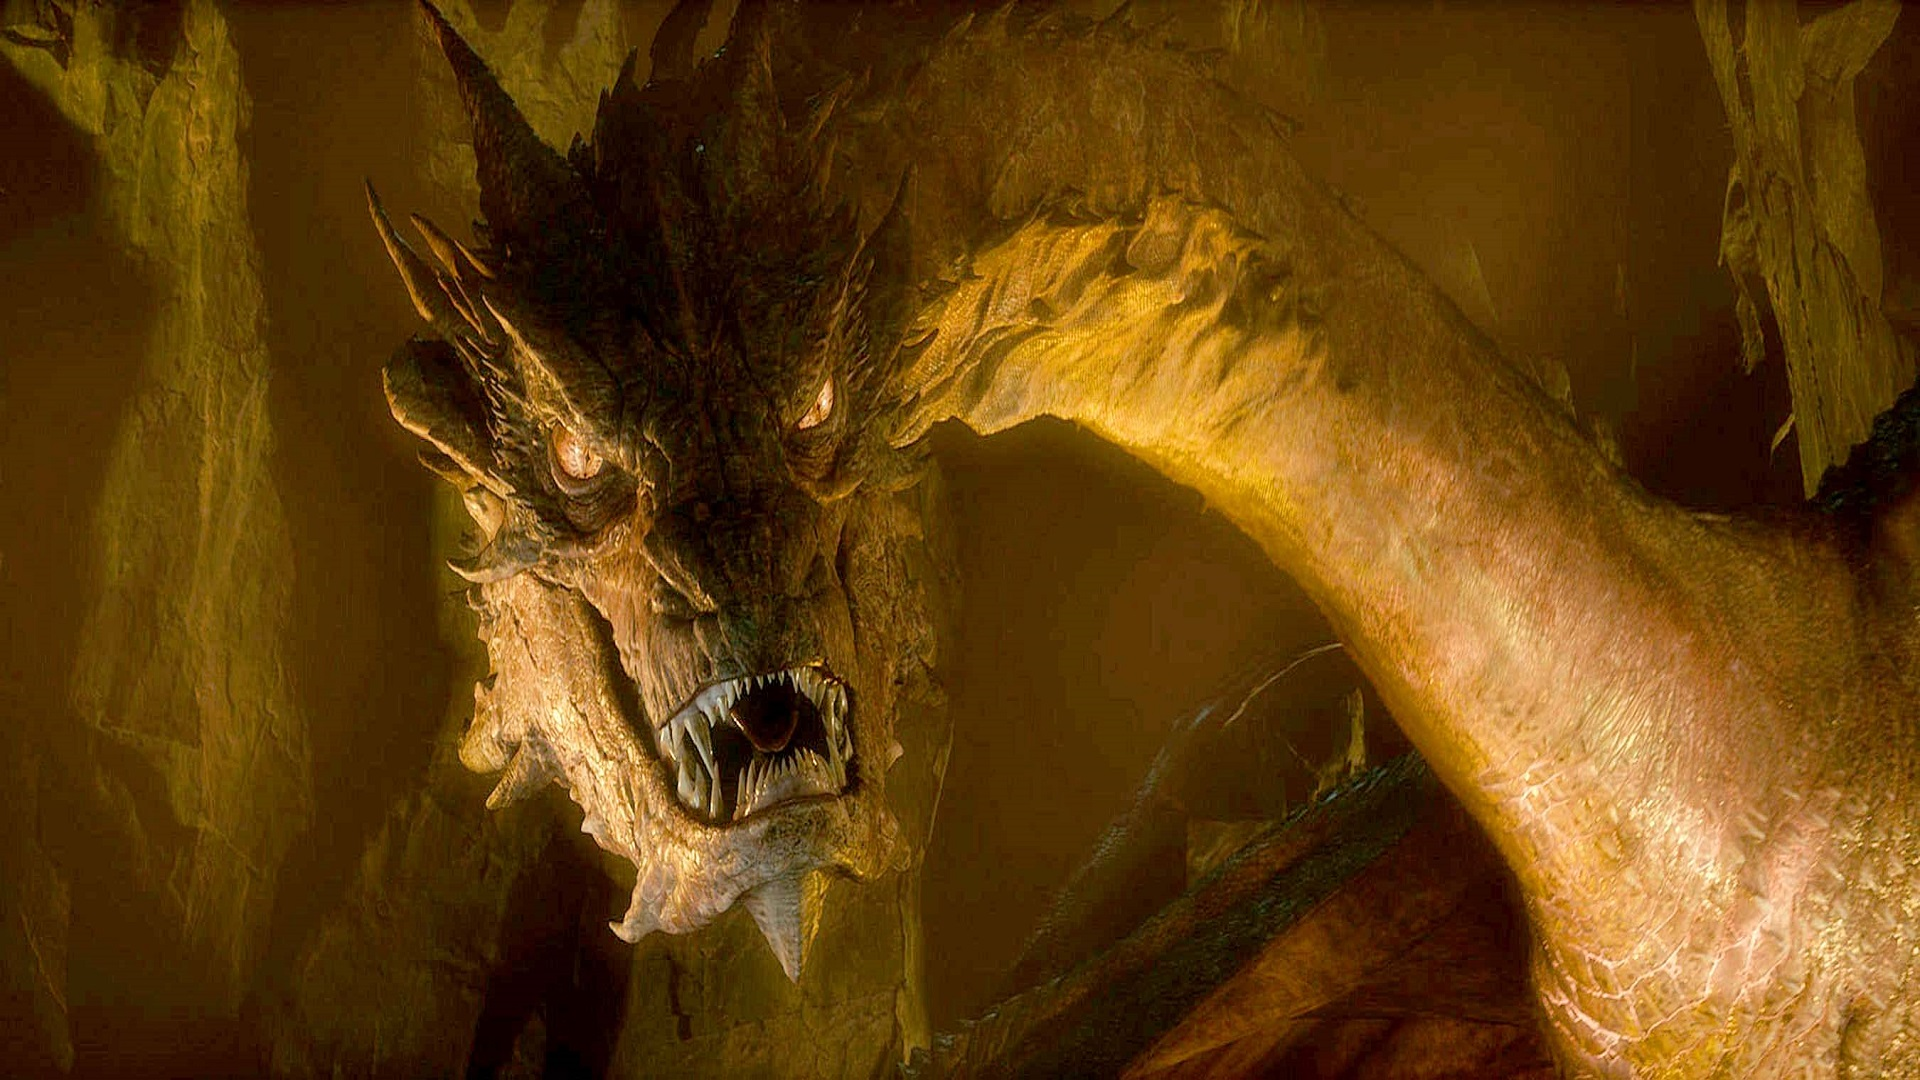 smaug the dragon hobbit - photo #22